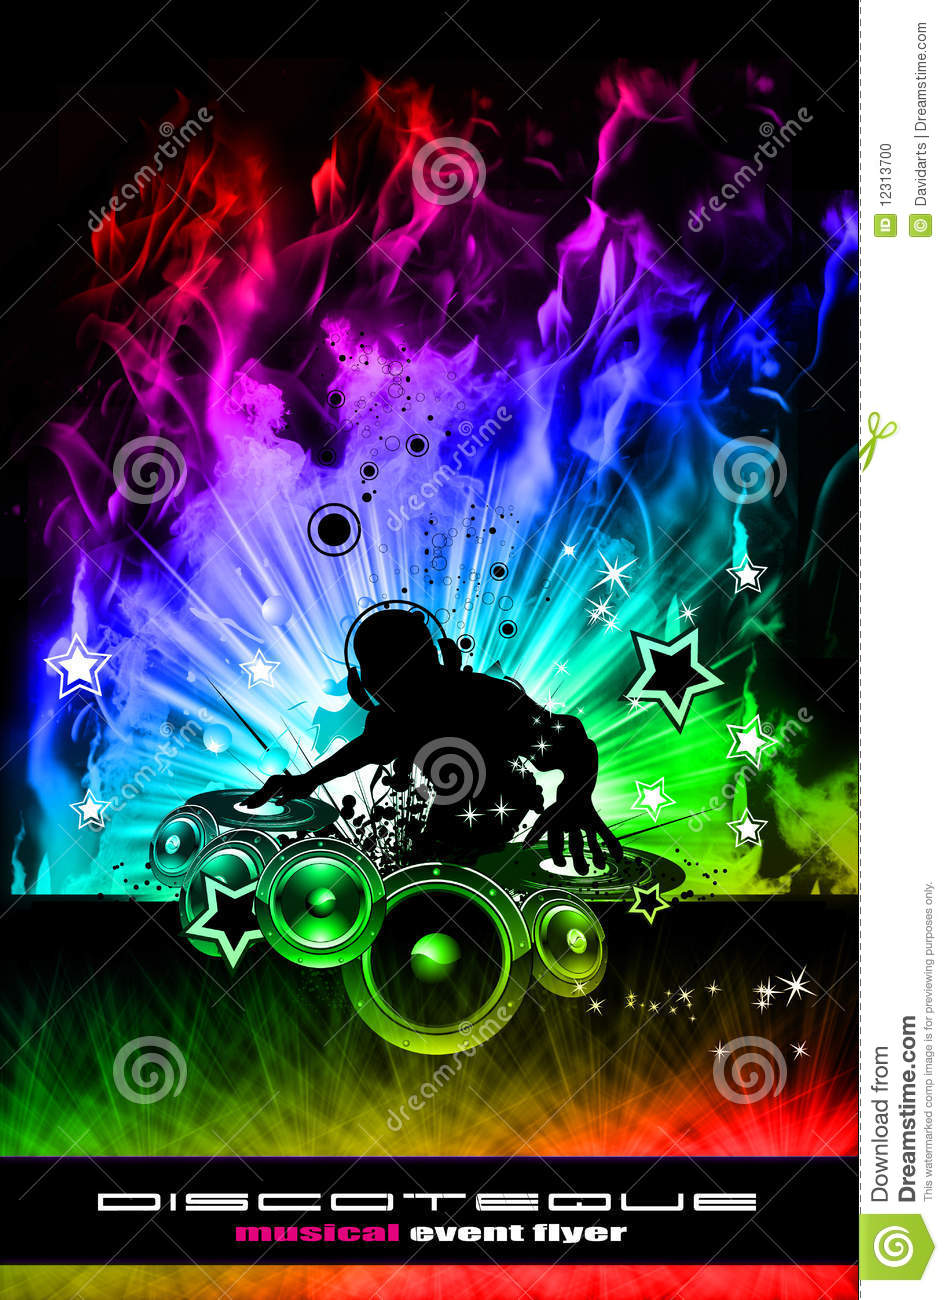 Discoteque Dj Flyer With Real Flames Stock Photo - Image: 12313700